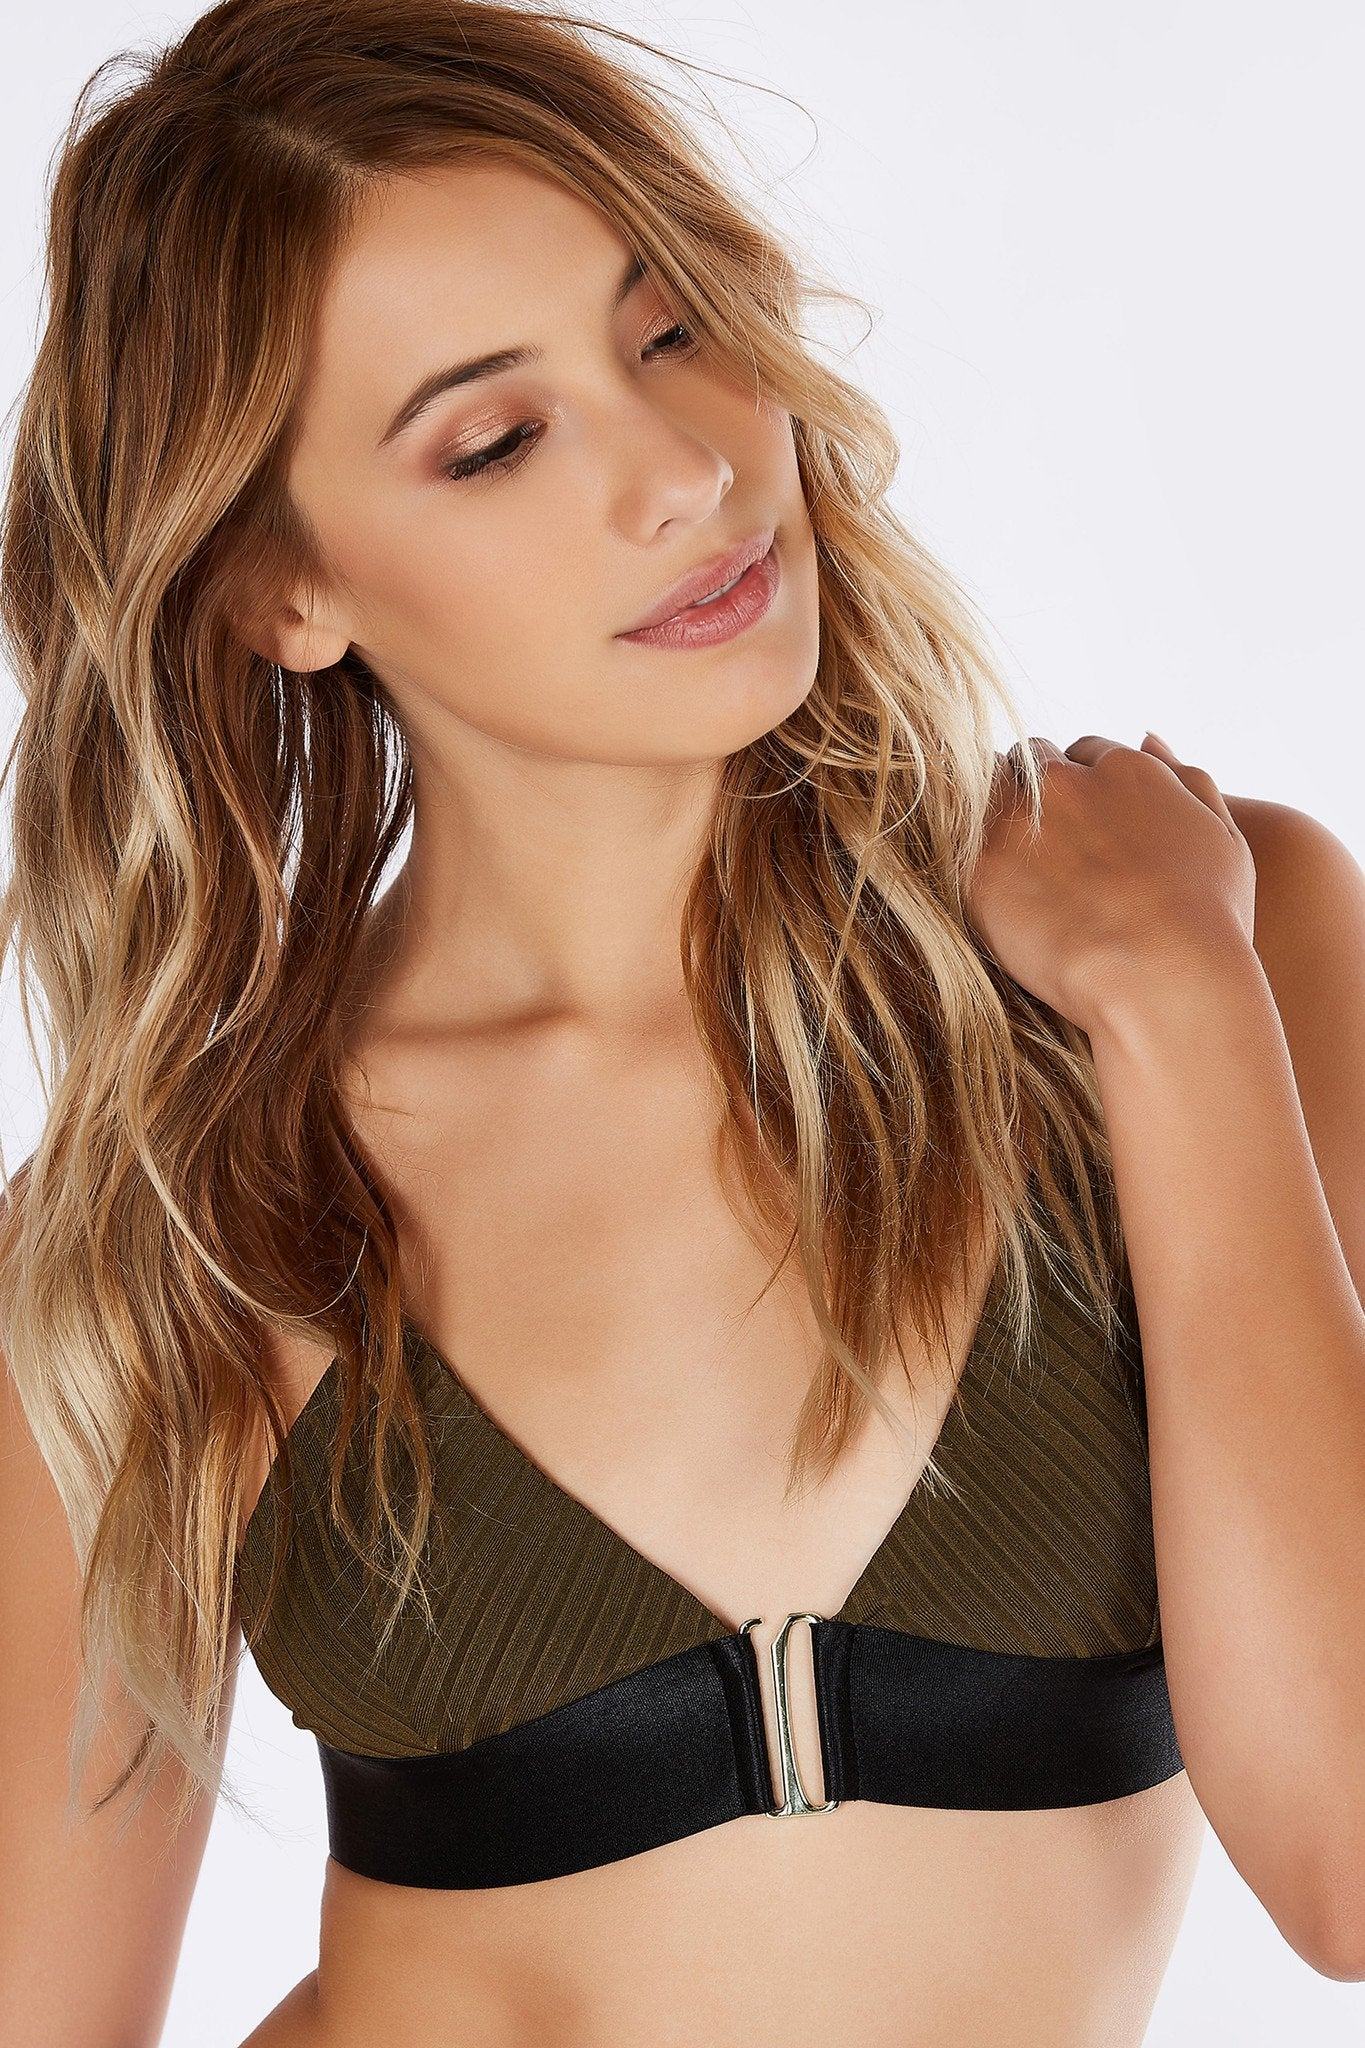 A seductive bralette with a chic front hook closure. Gold hardware detailing for an upscale look. Ribbed material for stretch and comfort. Thick band all around for a smooth finish. Layer with a deep cut top or on its own as a crop top!